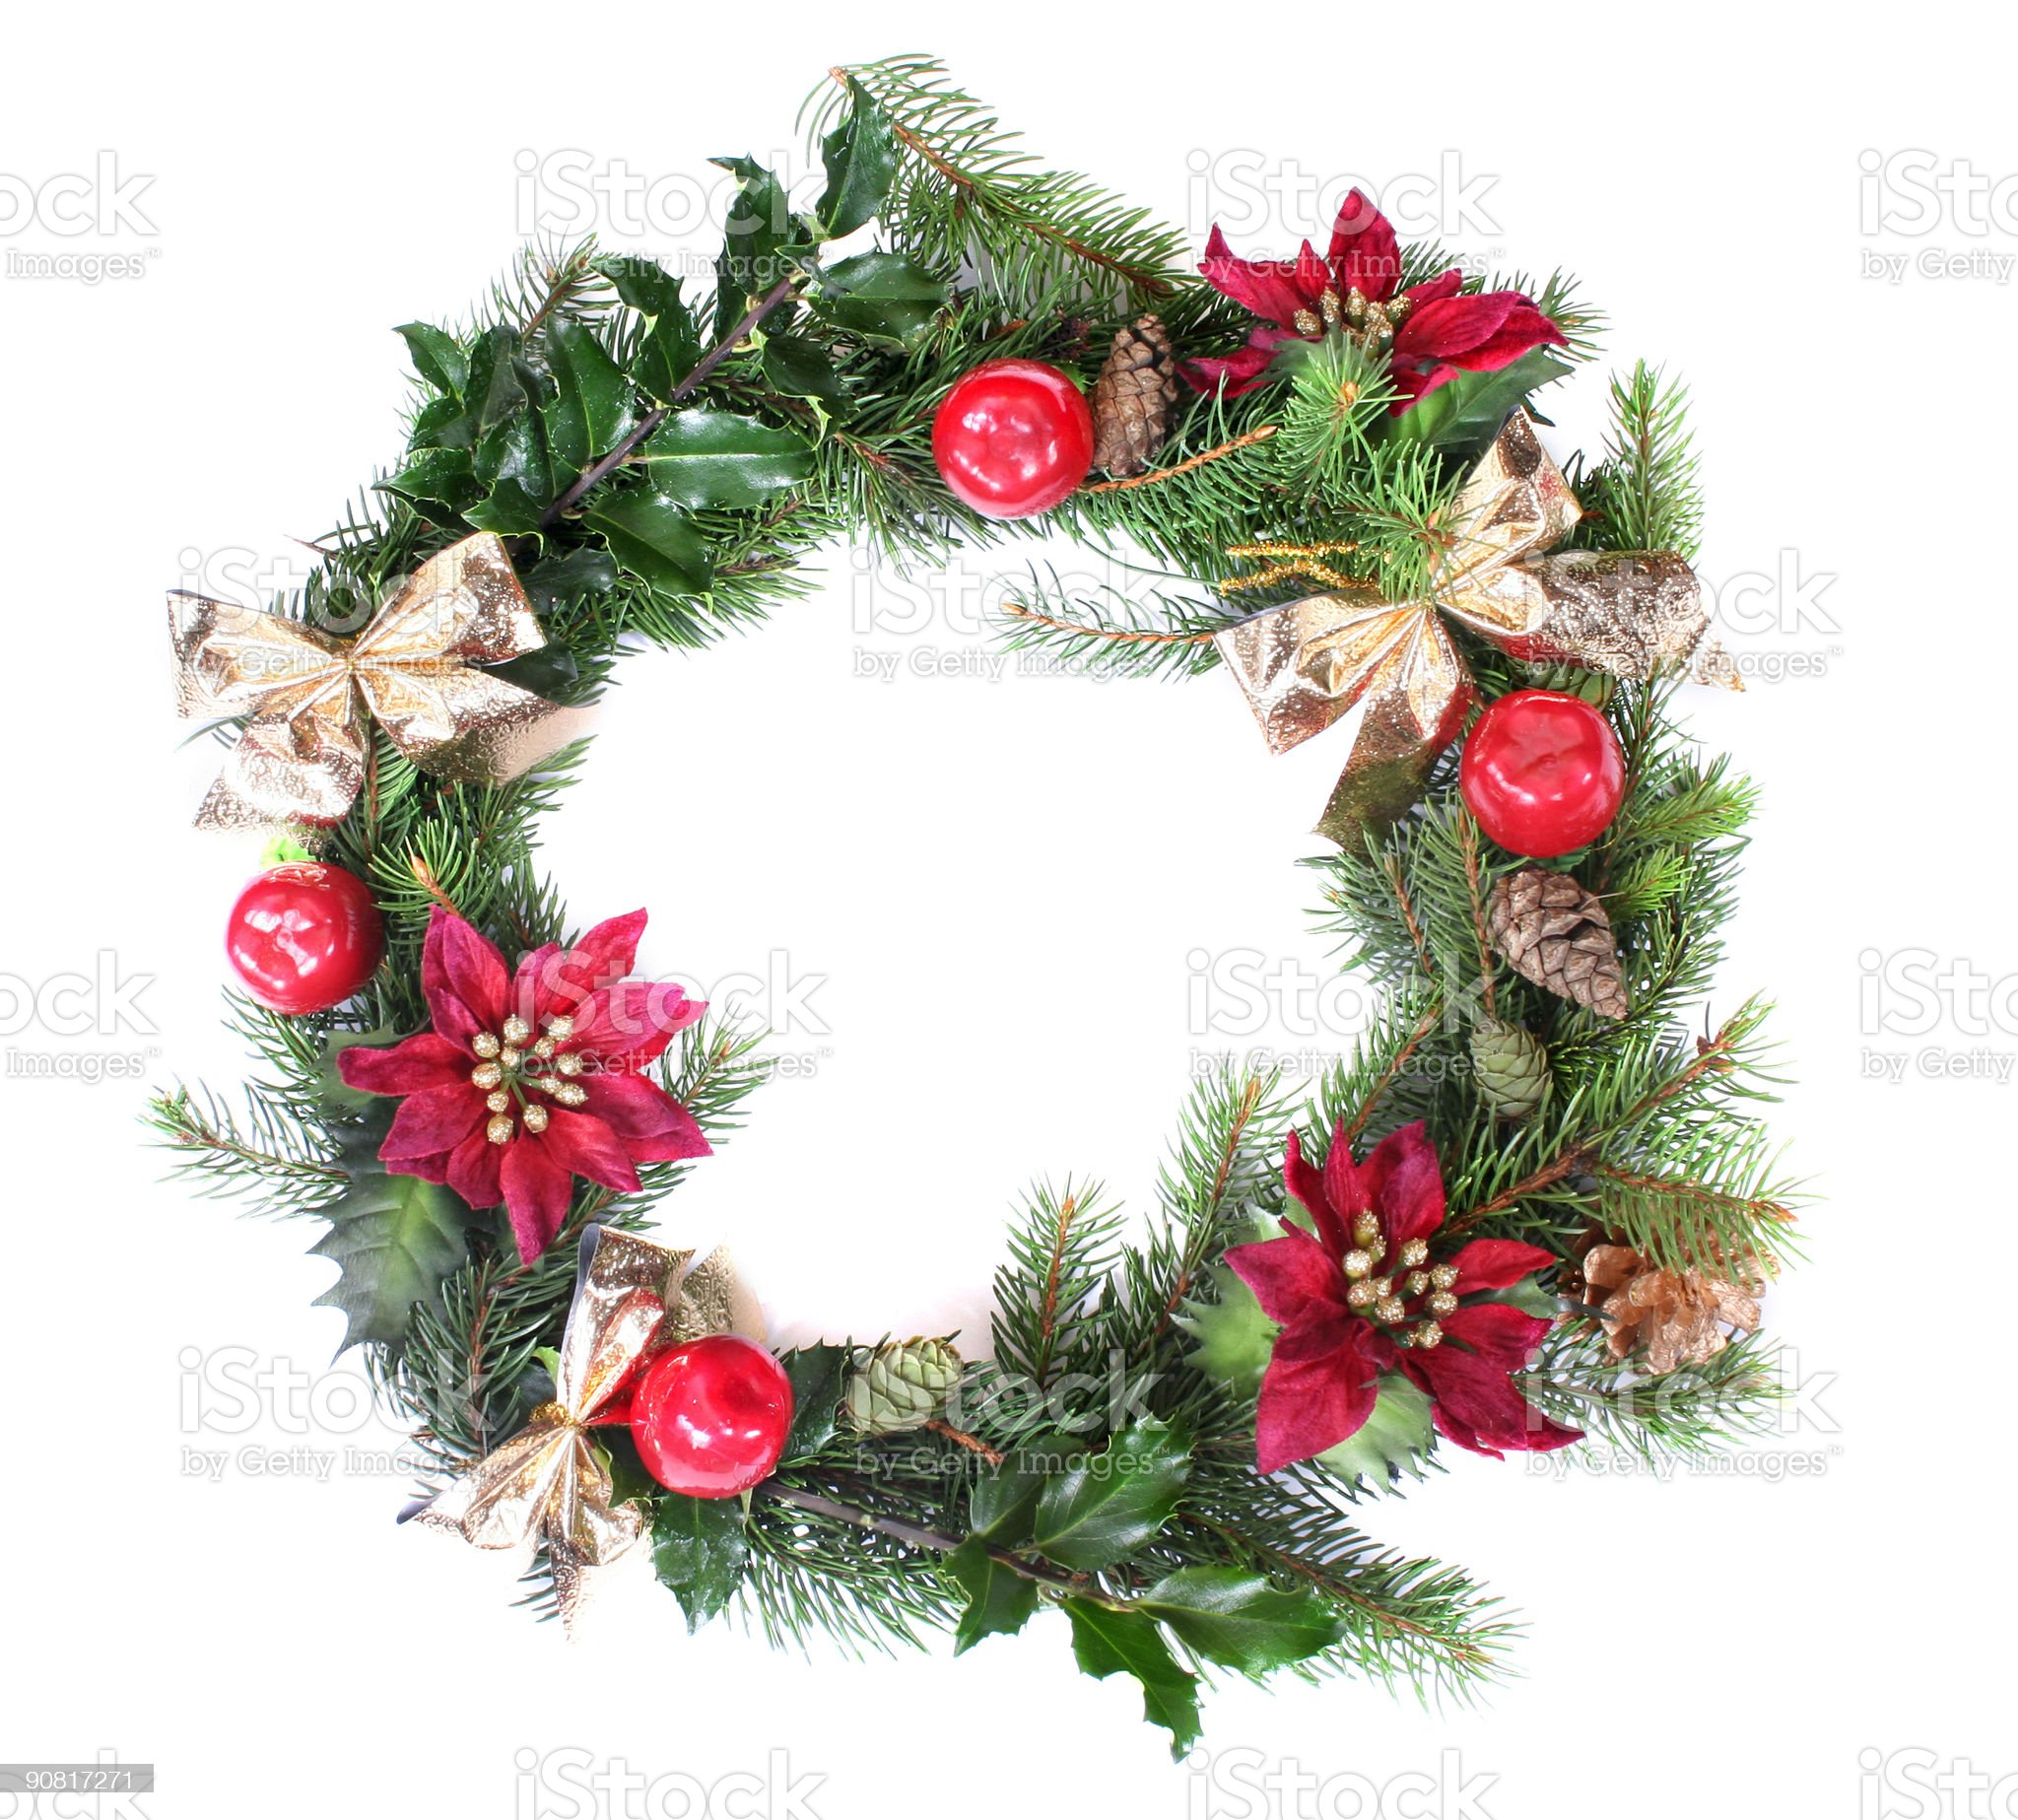 Christmas wreath on a wall during the festive season royalty-free stock photo